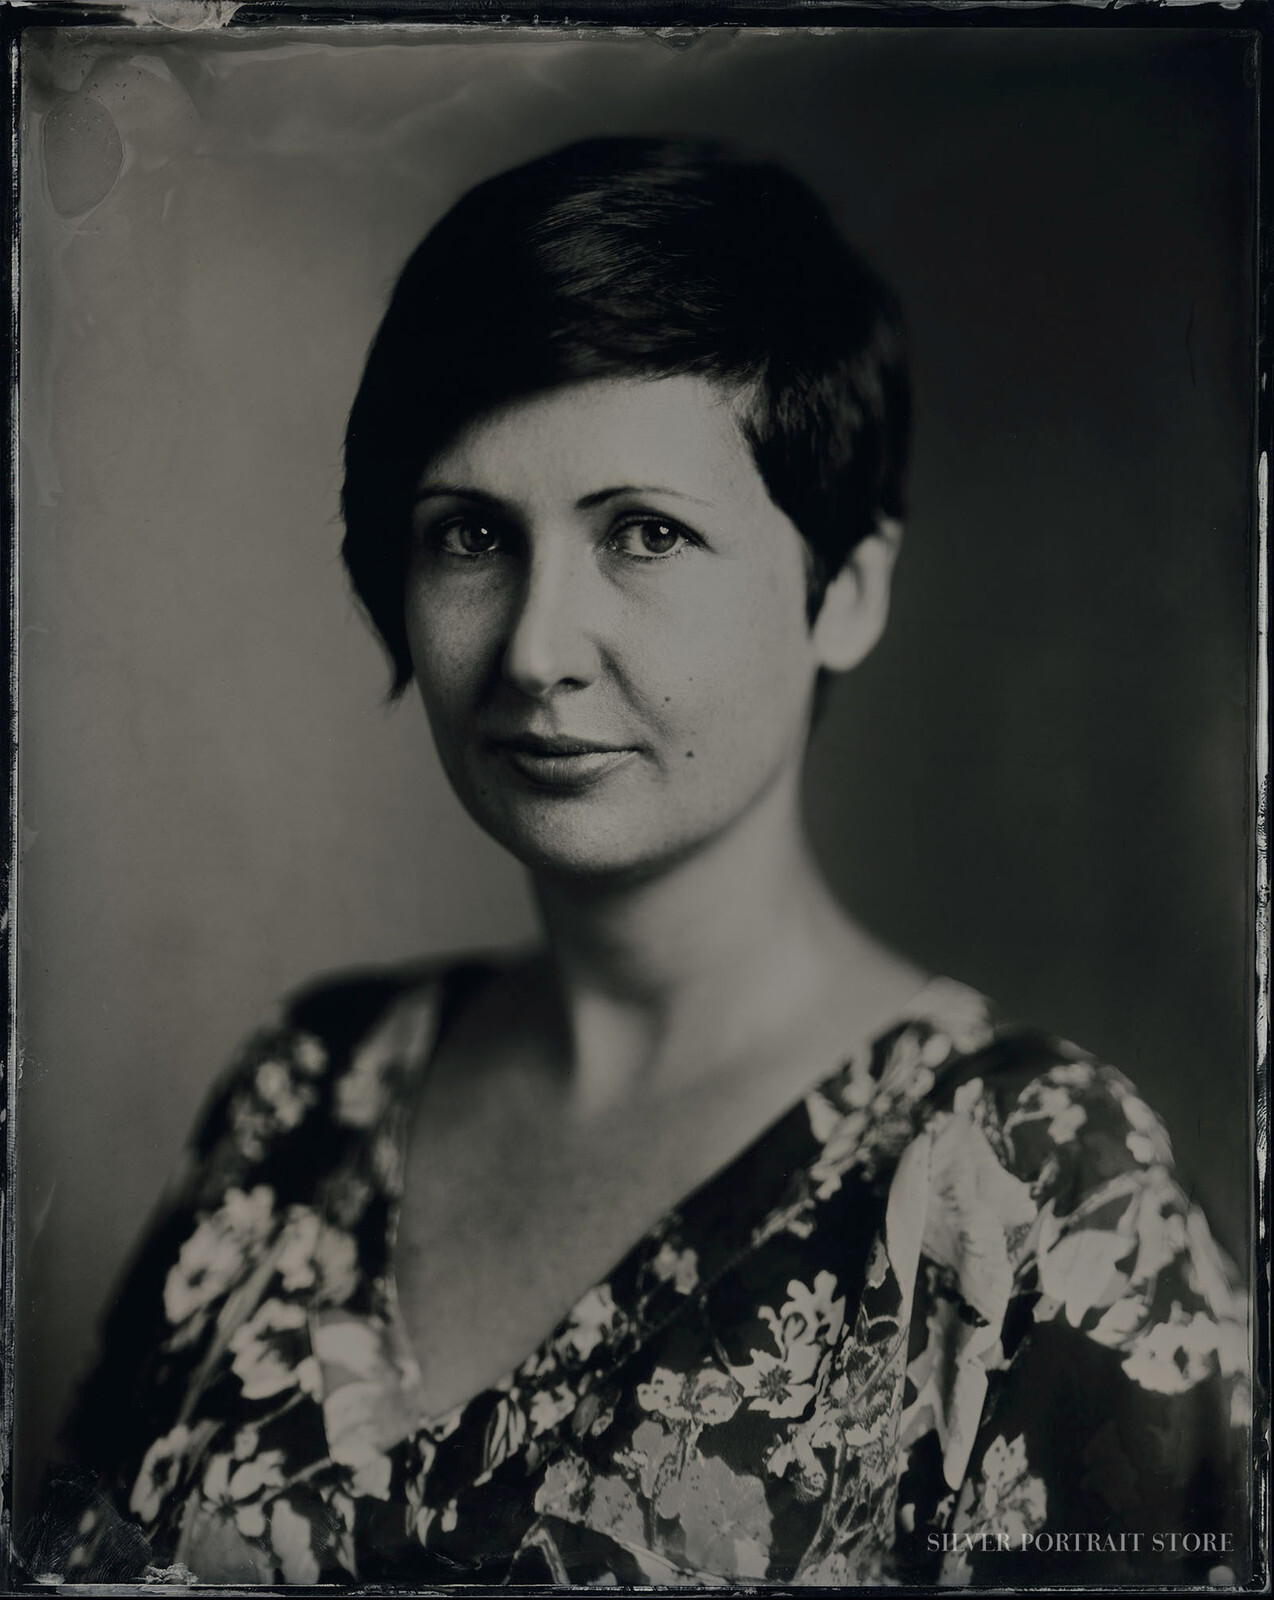 Sophi-Silver Portrait Store-Scan from Wet plate collodion-Tintype 20 x 25 cm